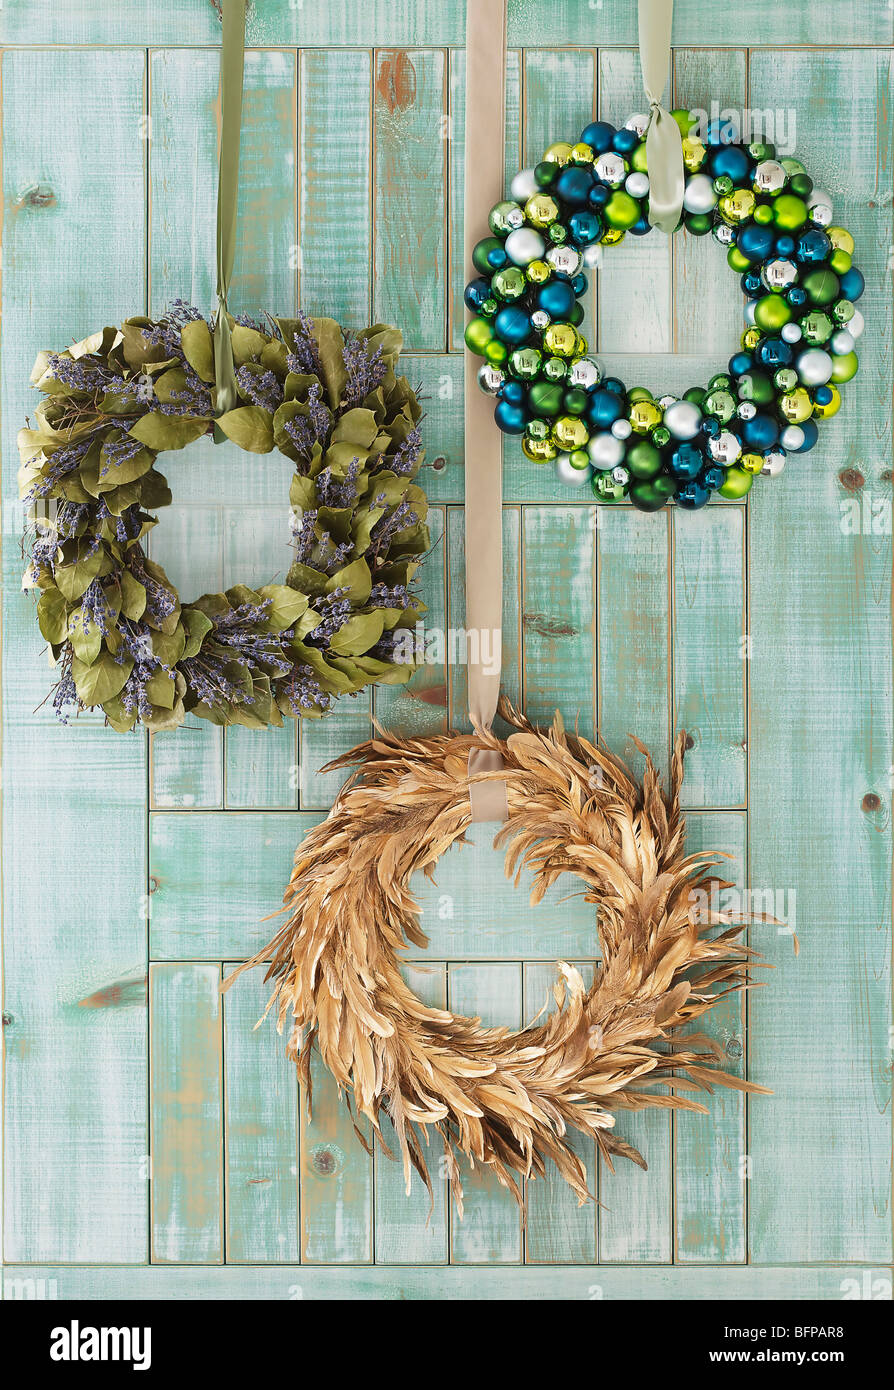 Holiday Wreaths For Home Decoration   Stock Image